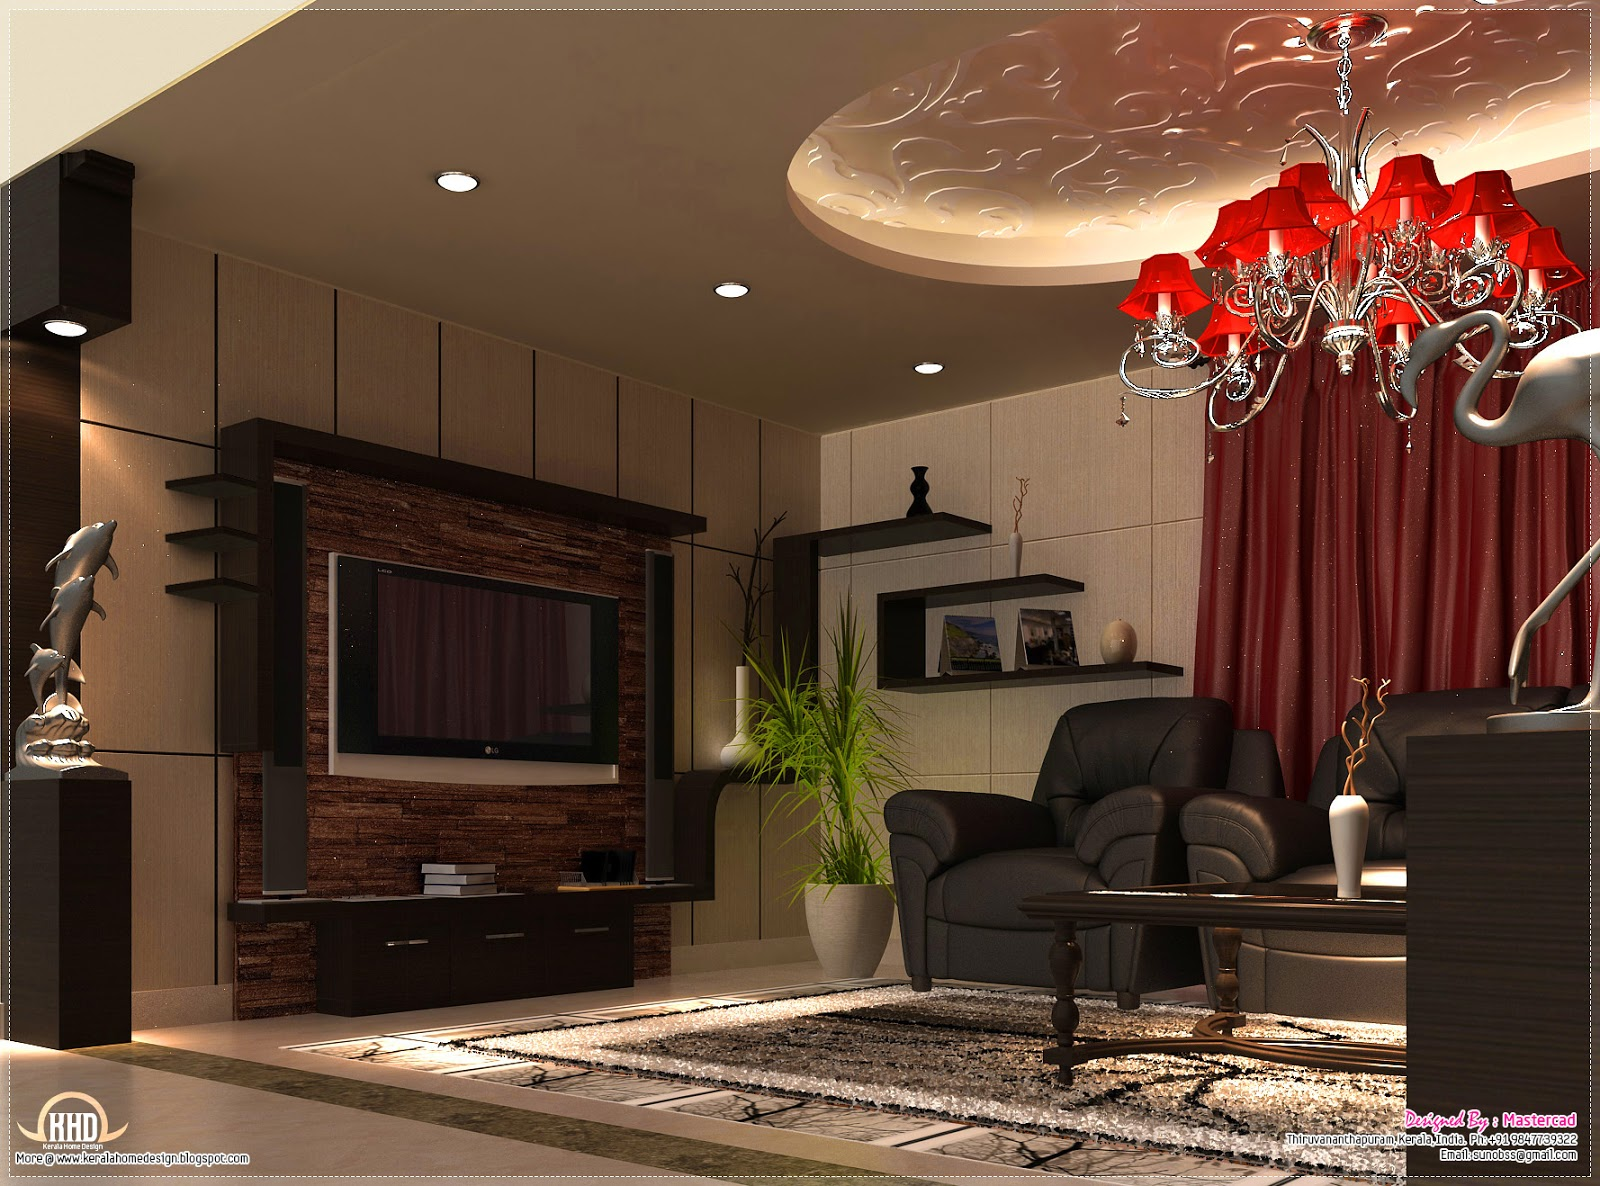 Interior design ideas home kerala plans for Apartment interior design mysore